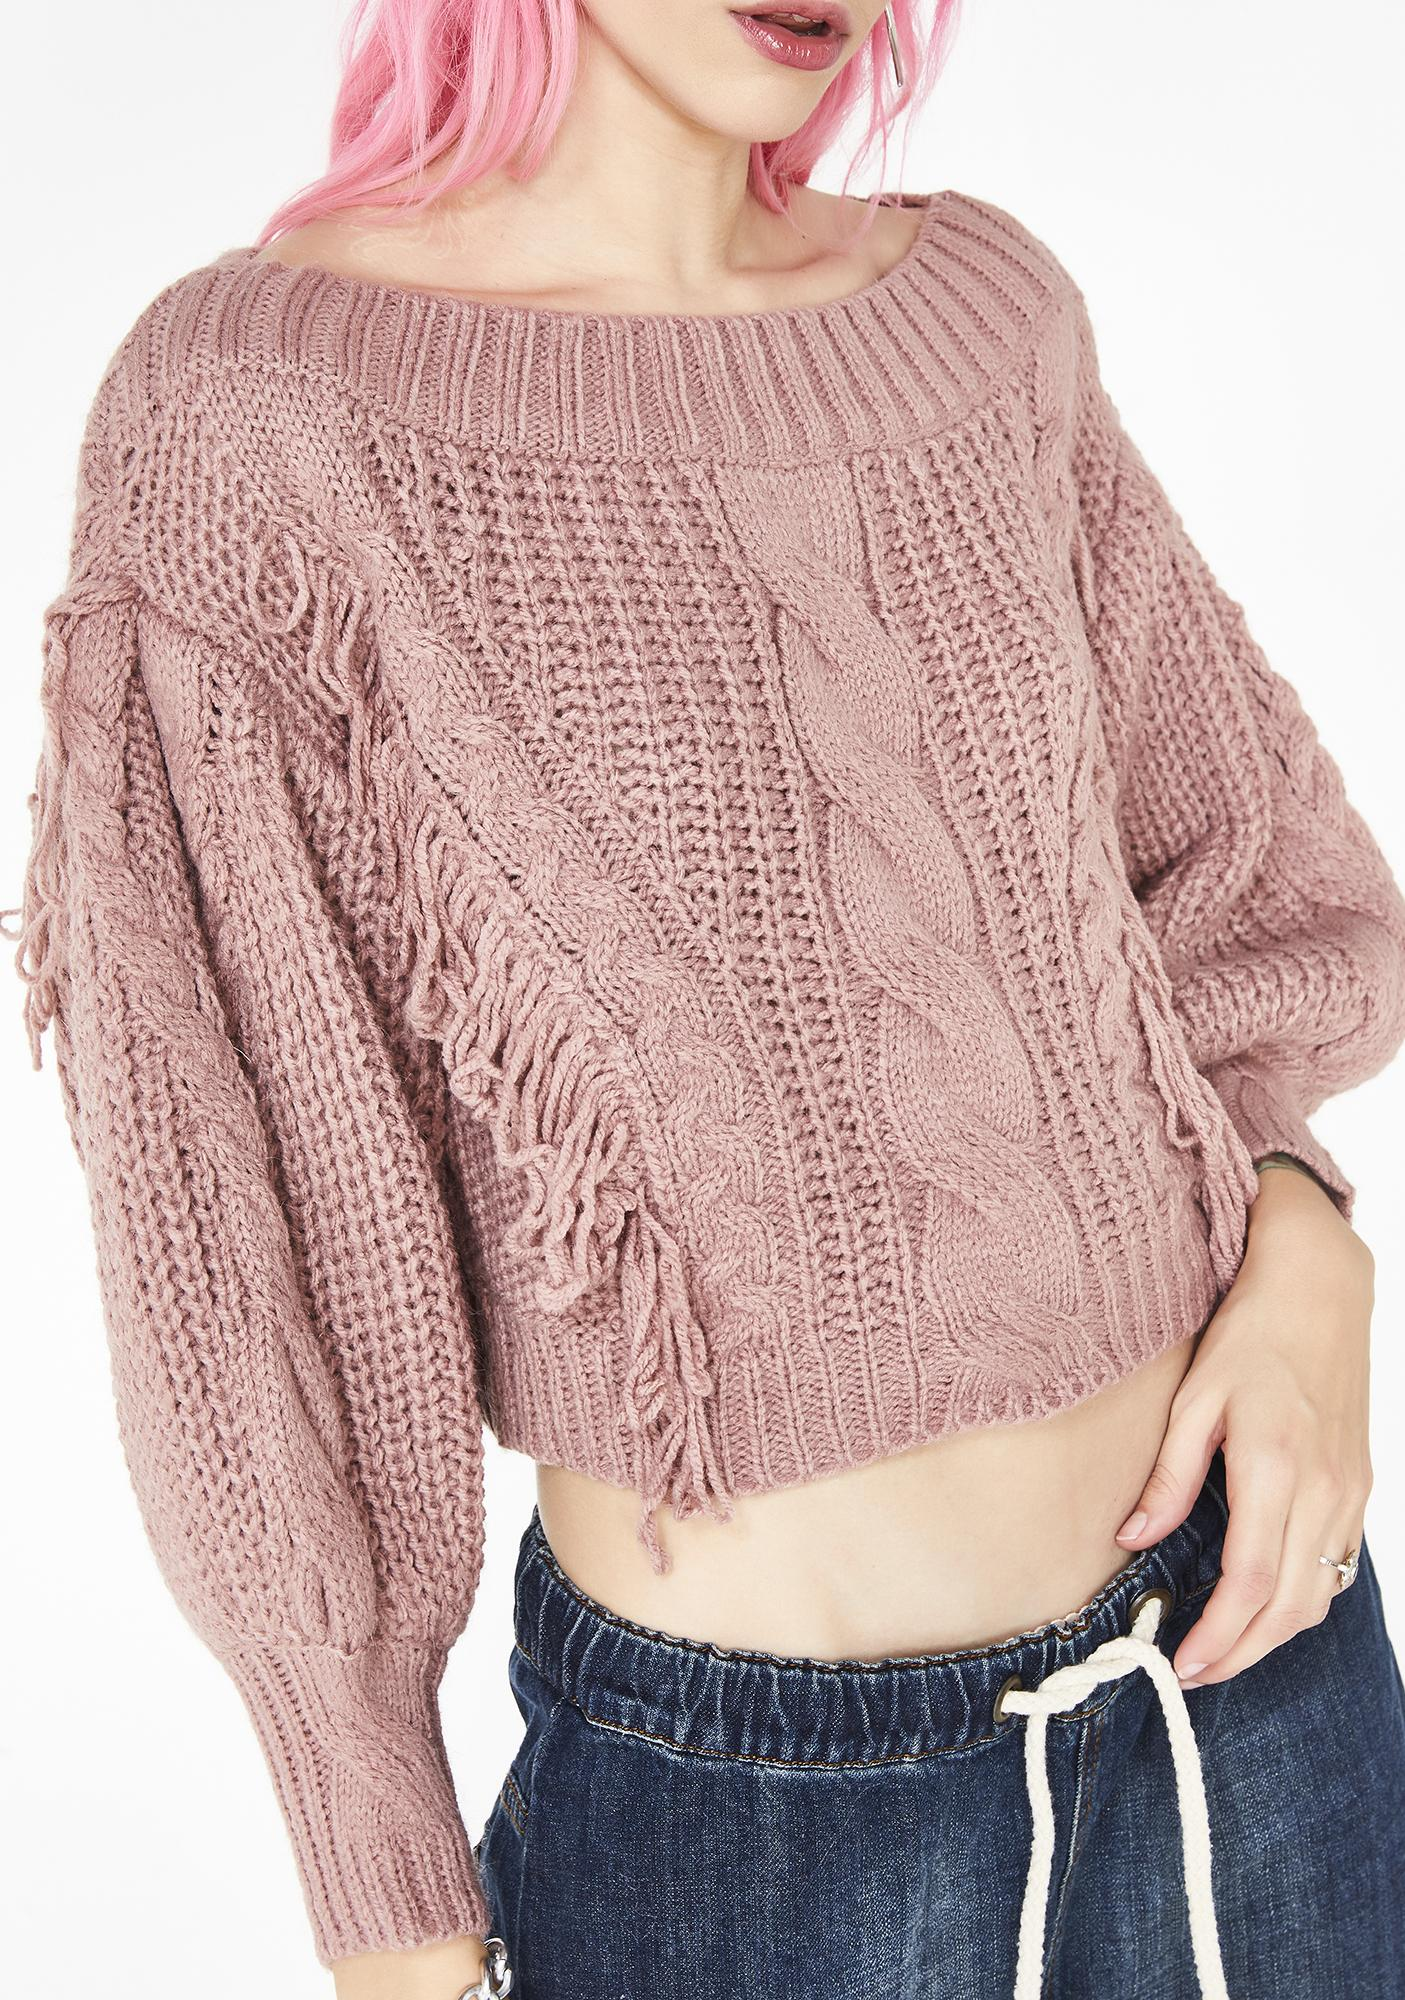 Sweet Positive Vibes Chunky Sweater